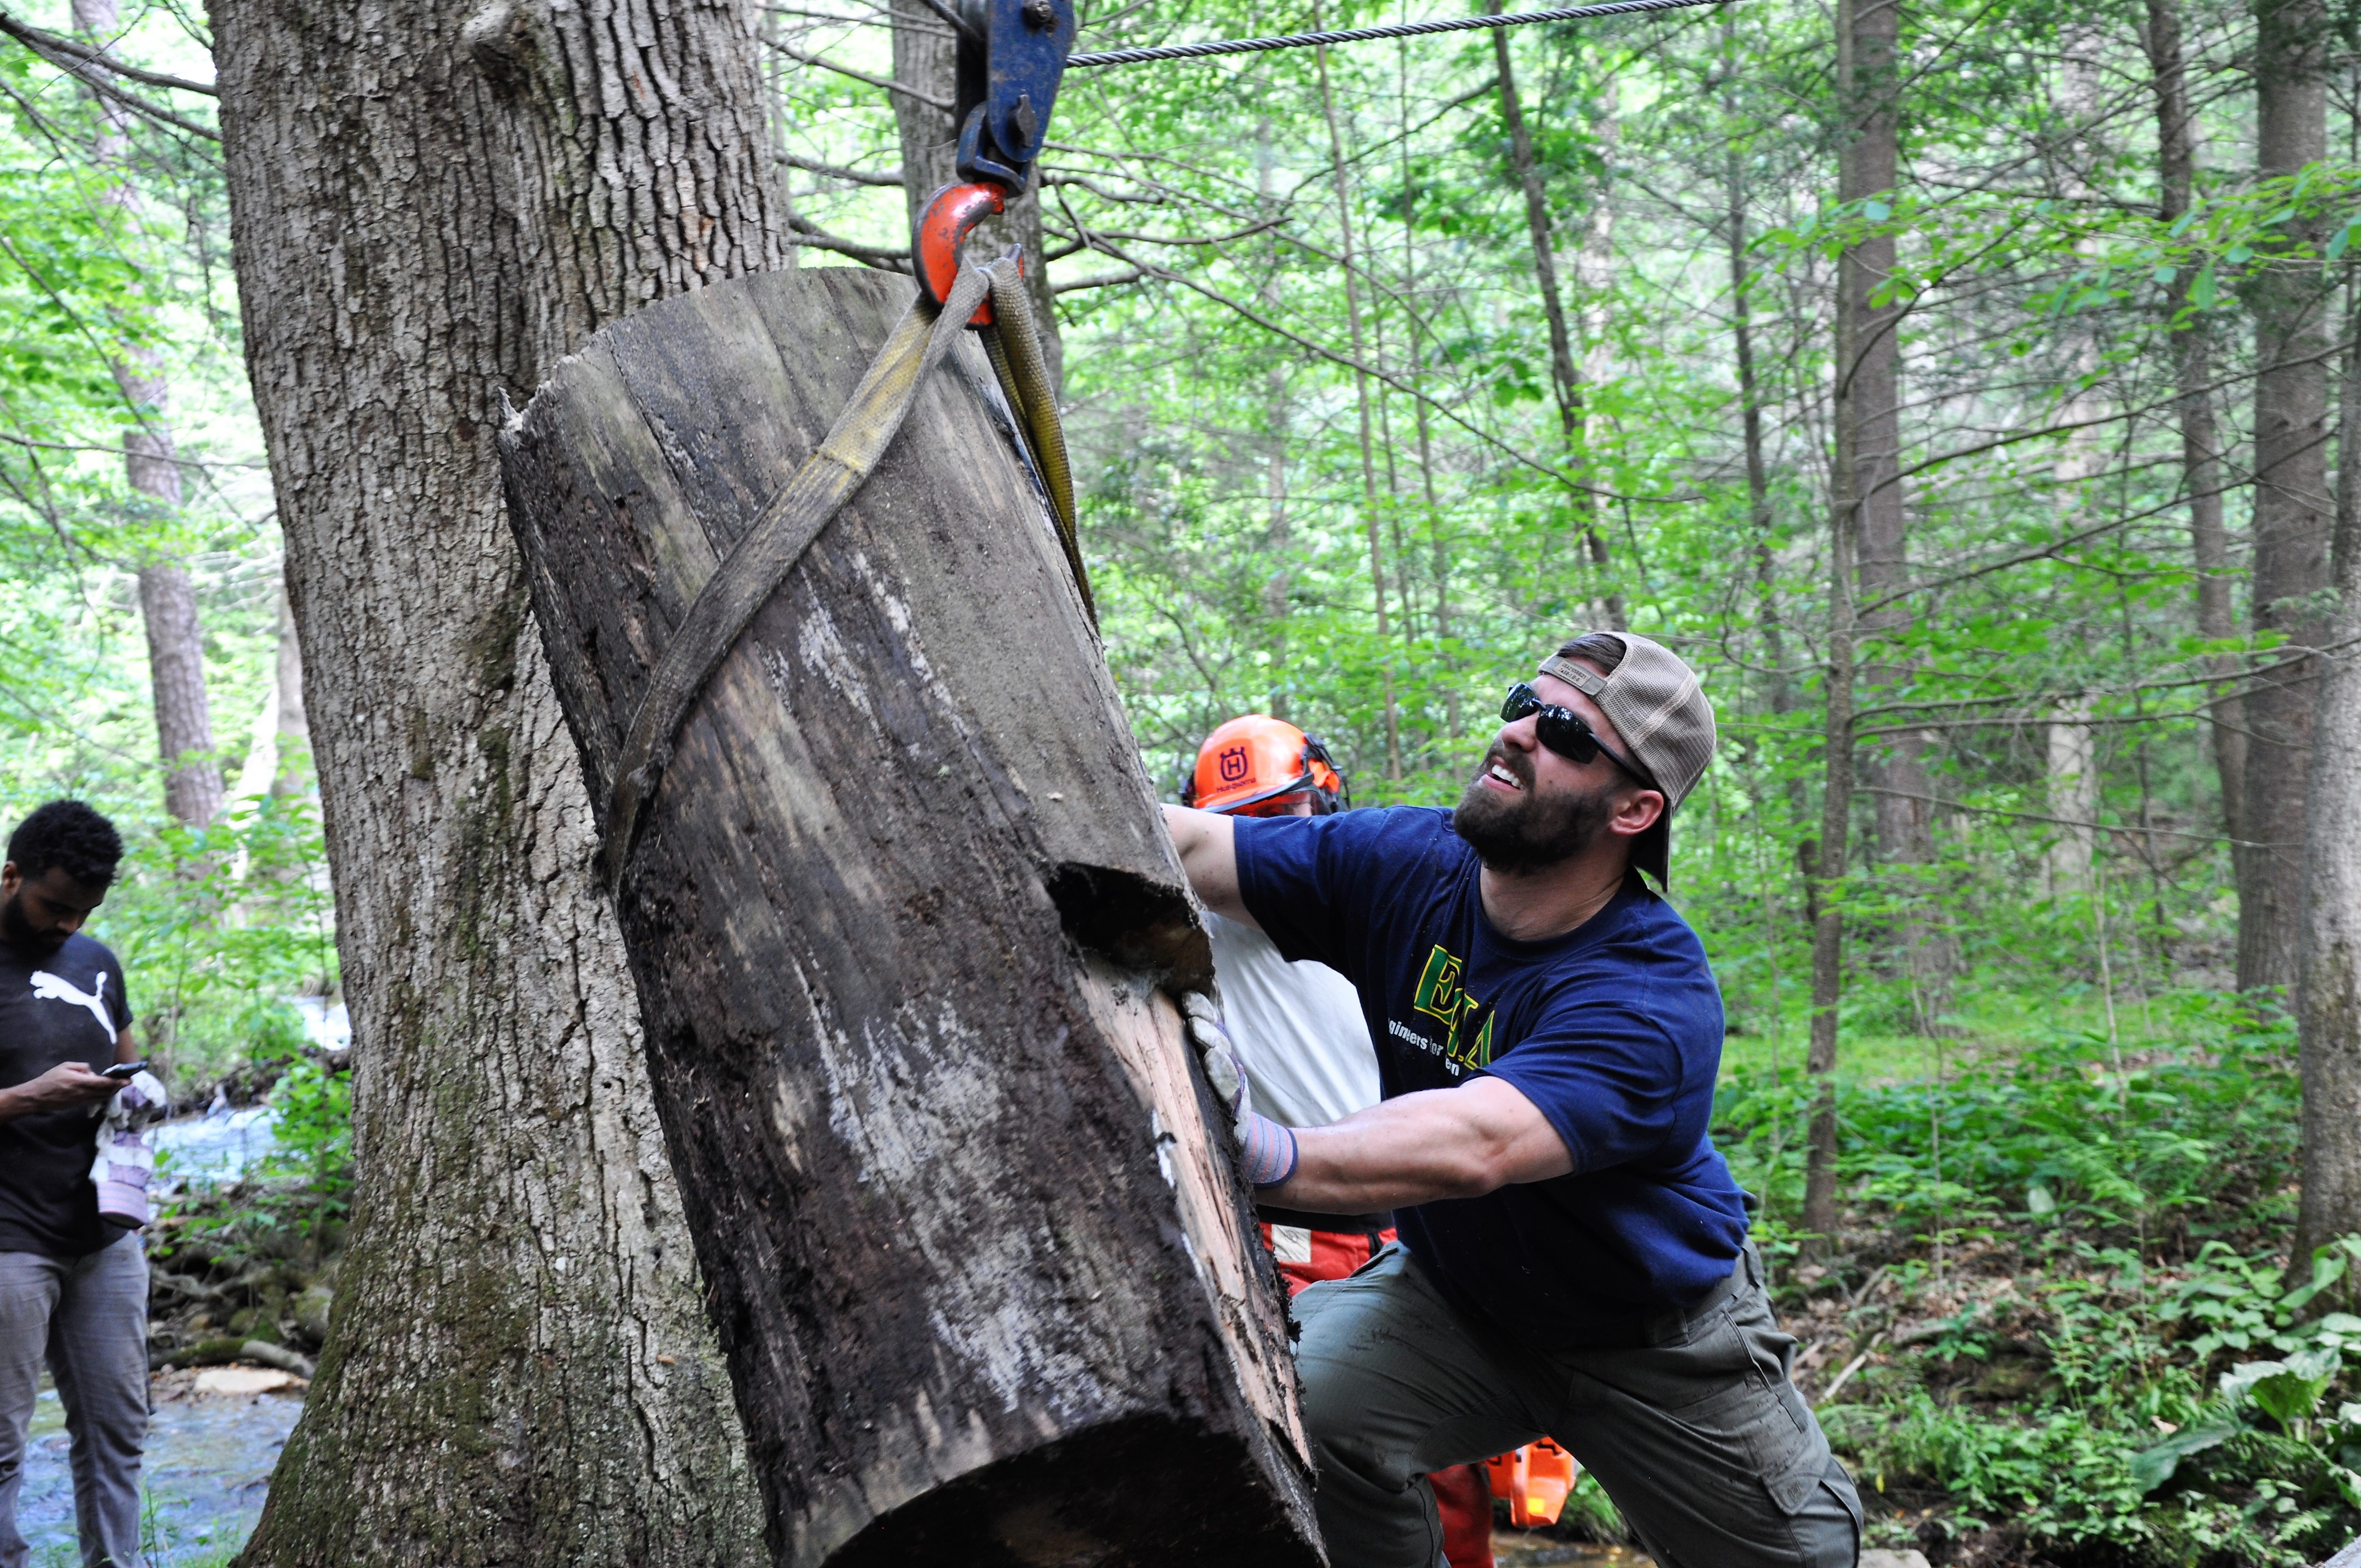 Michael Schindler moves a tree while performing trail work